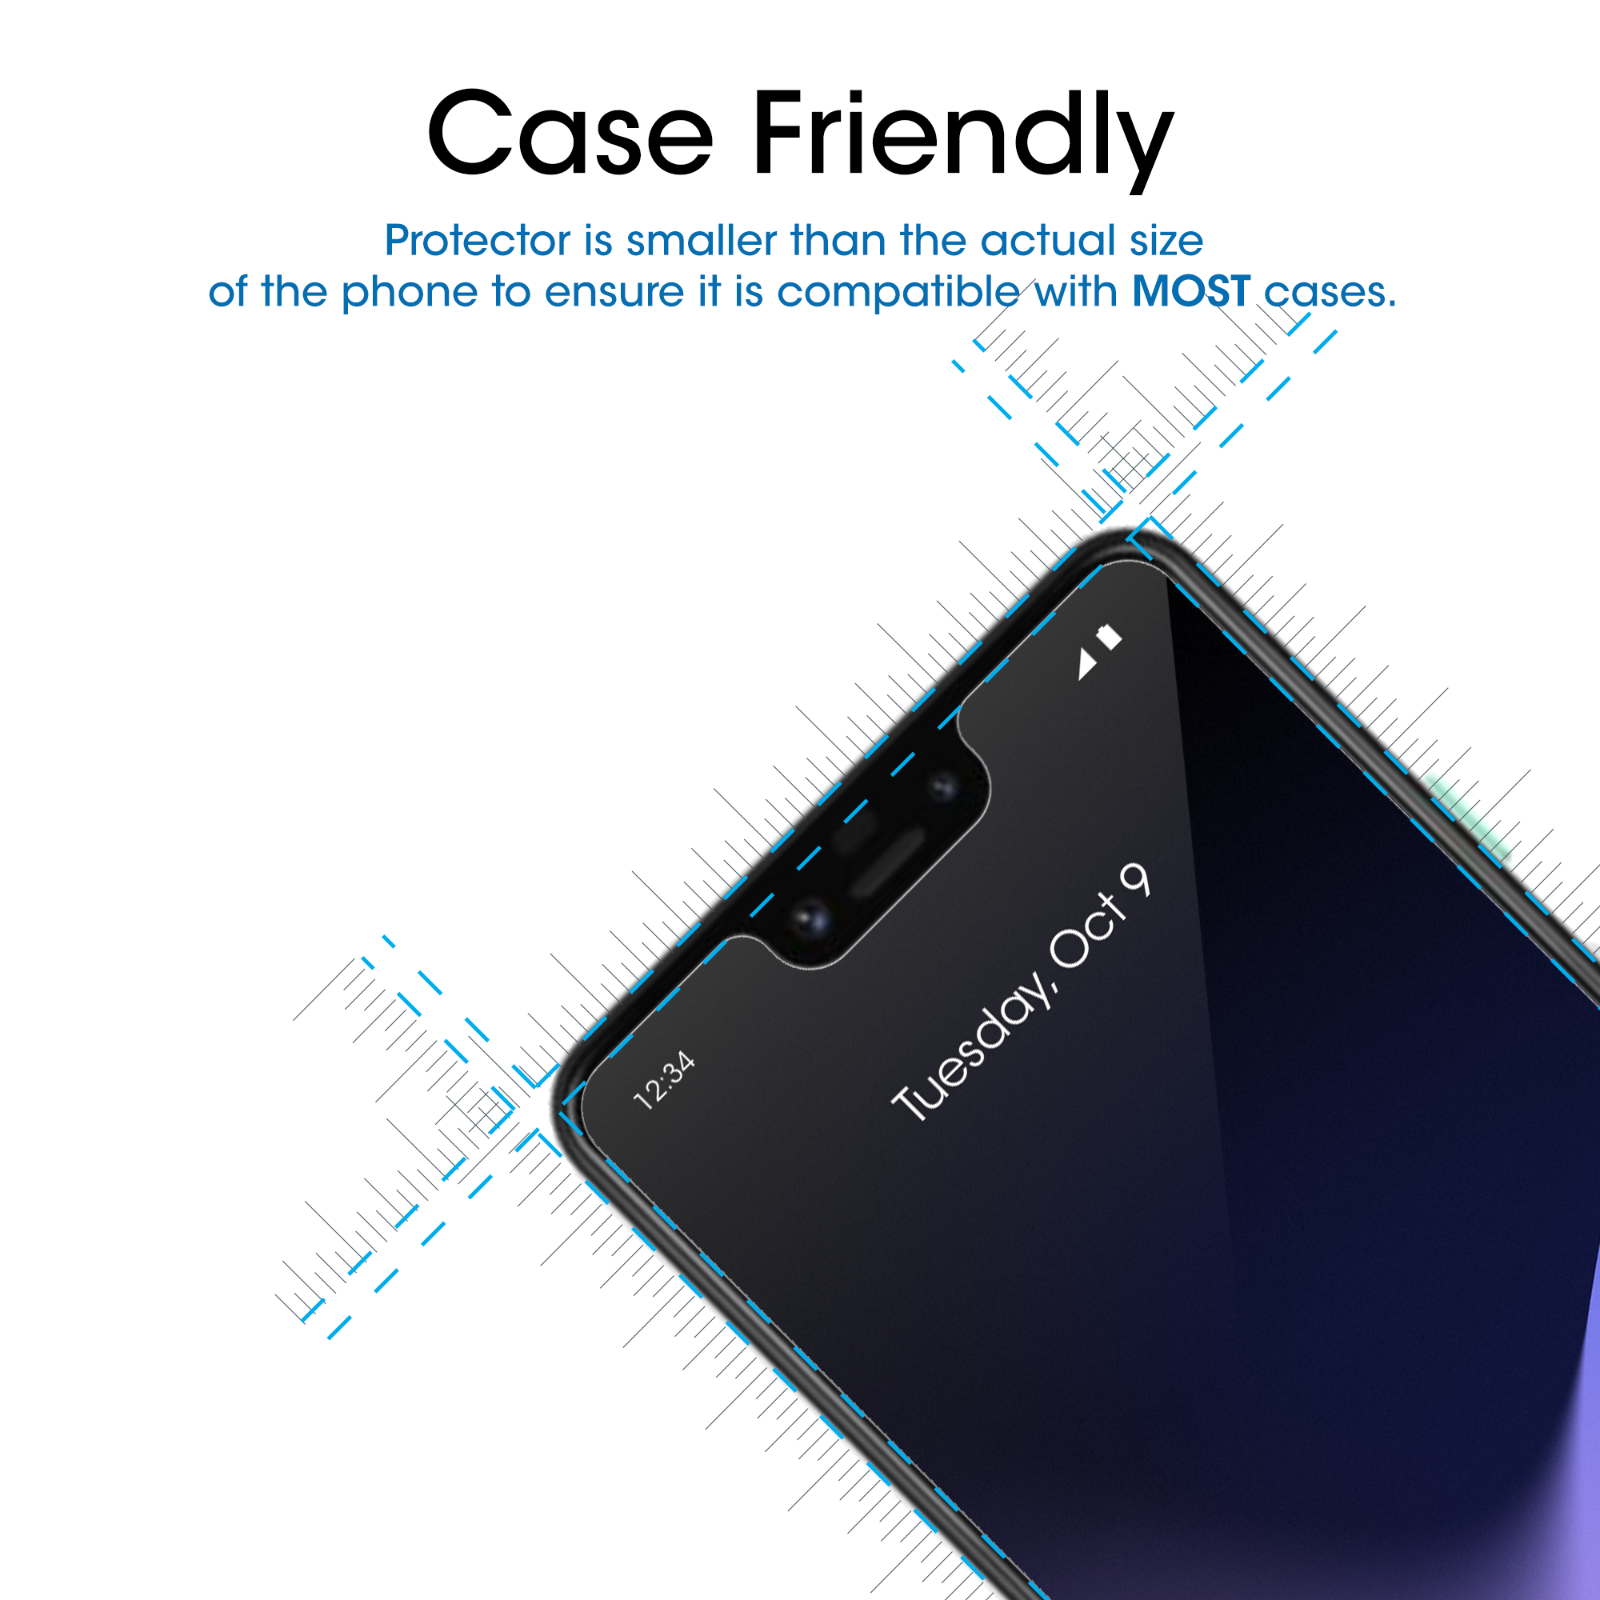 Google Pixel 3 XL amFilm Case Friendly Tempered Glass Screen Protector (3 Pack) 2